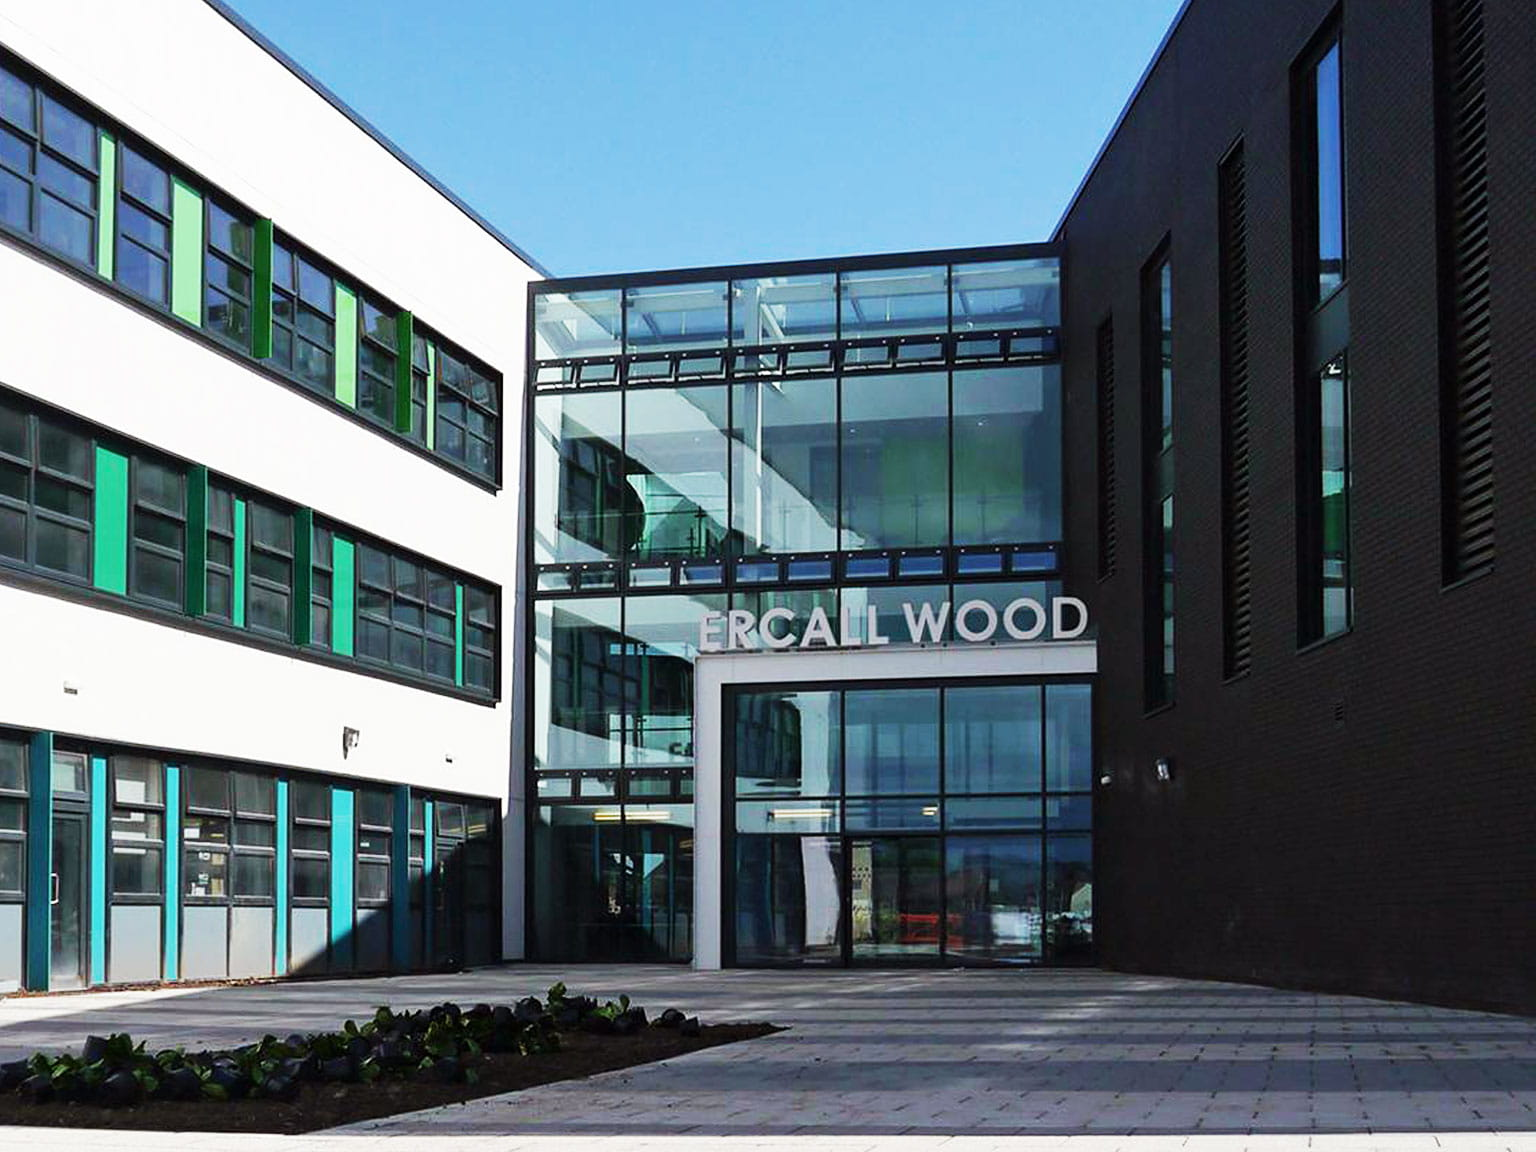 photo of Ercall Wood College